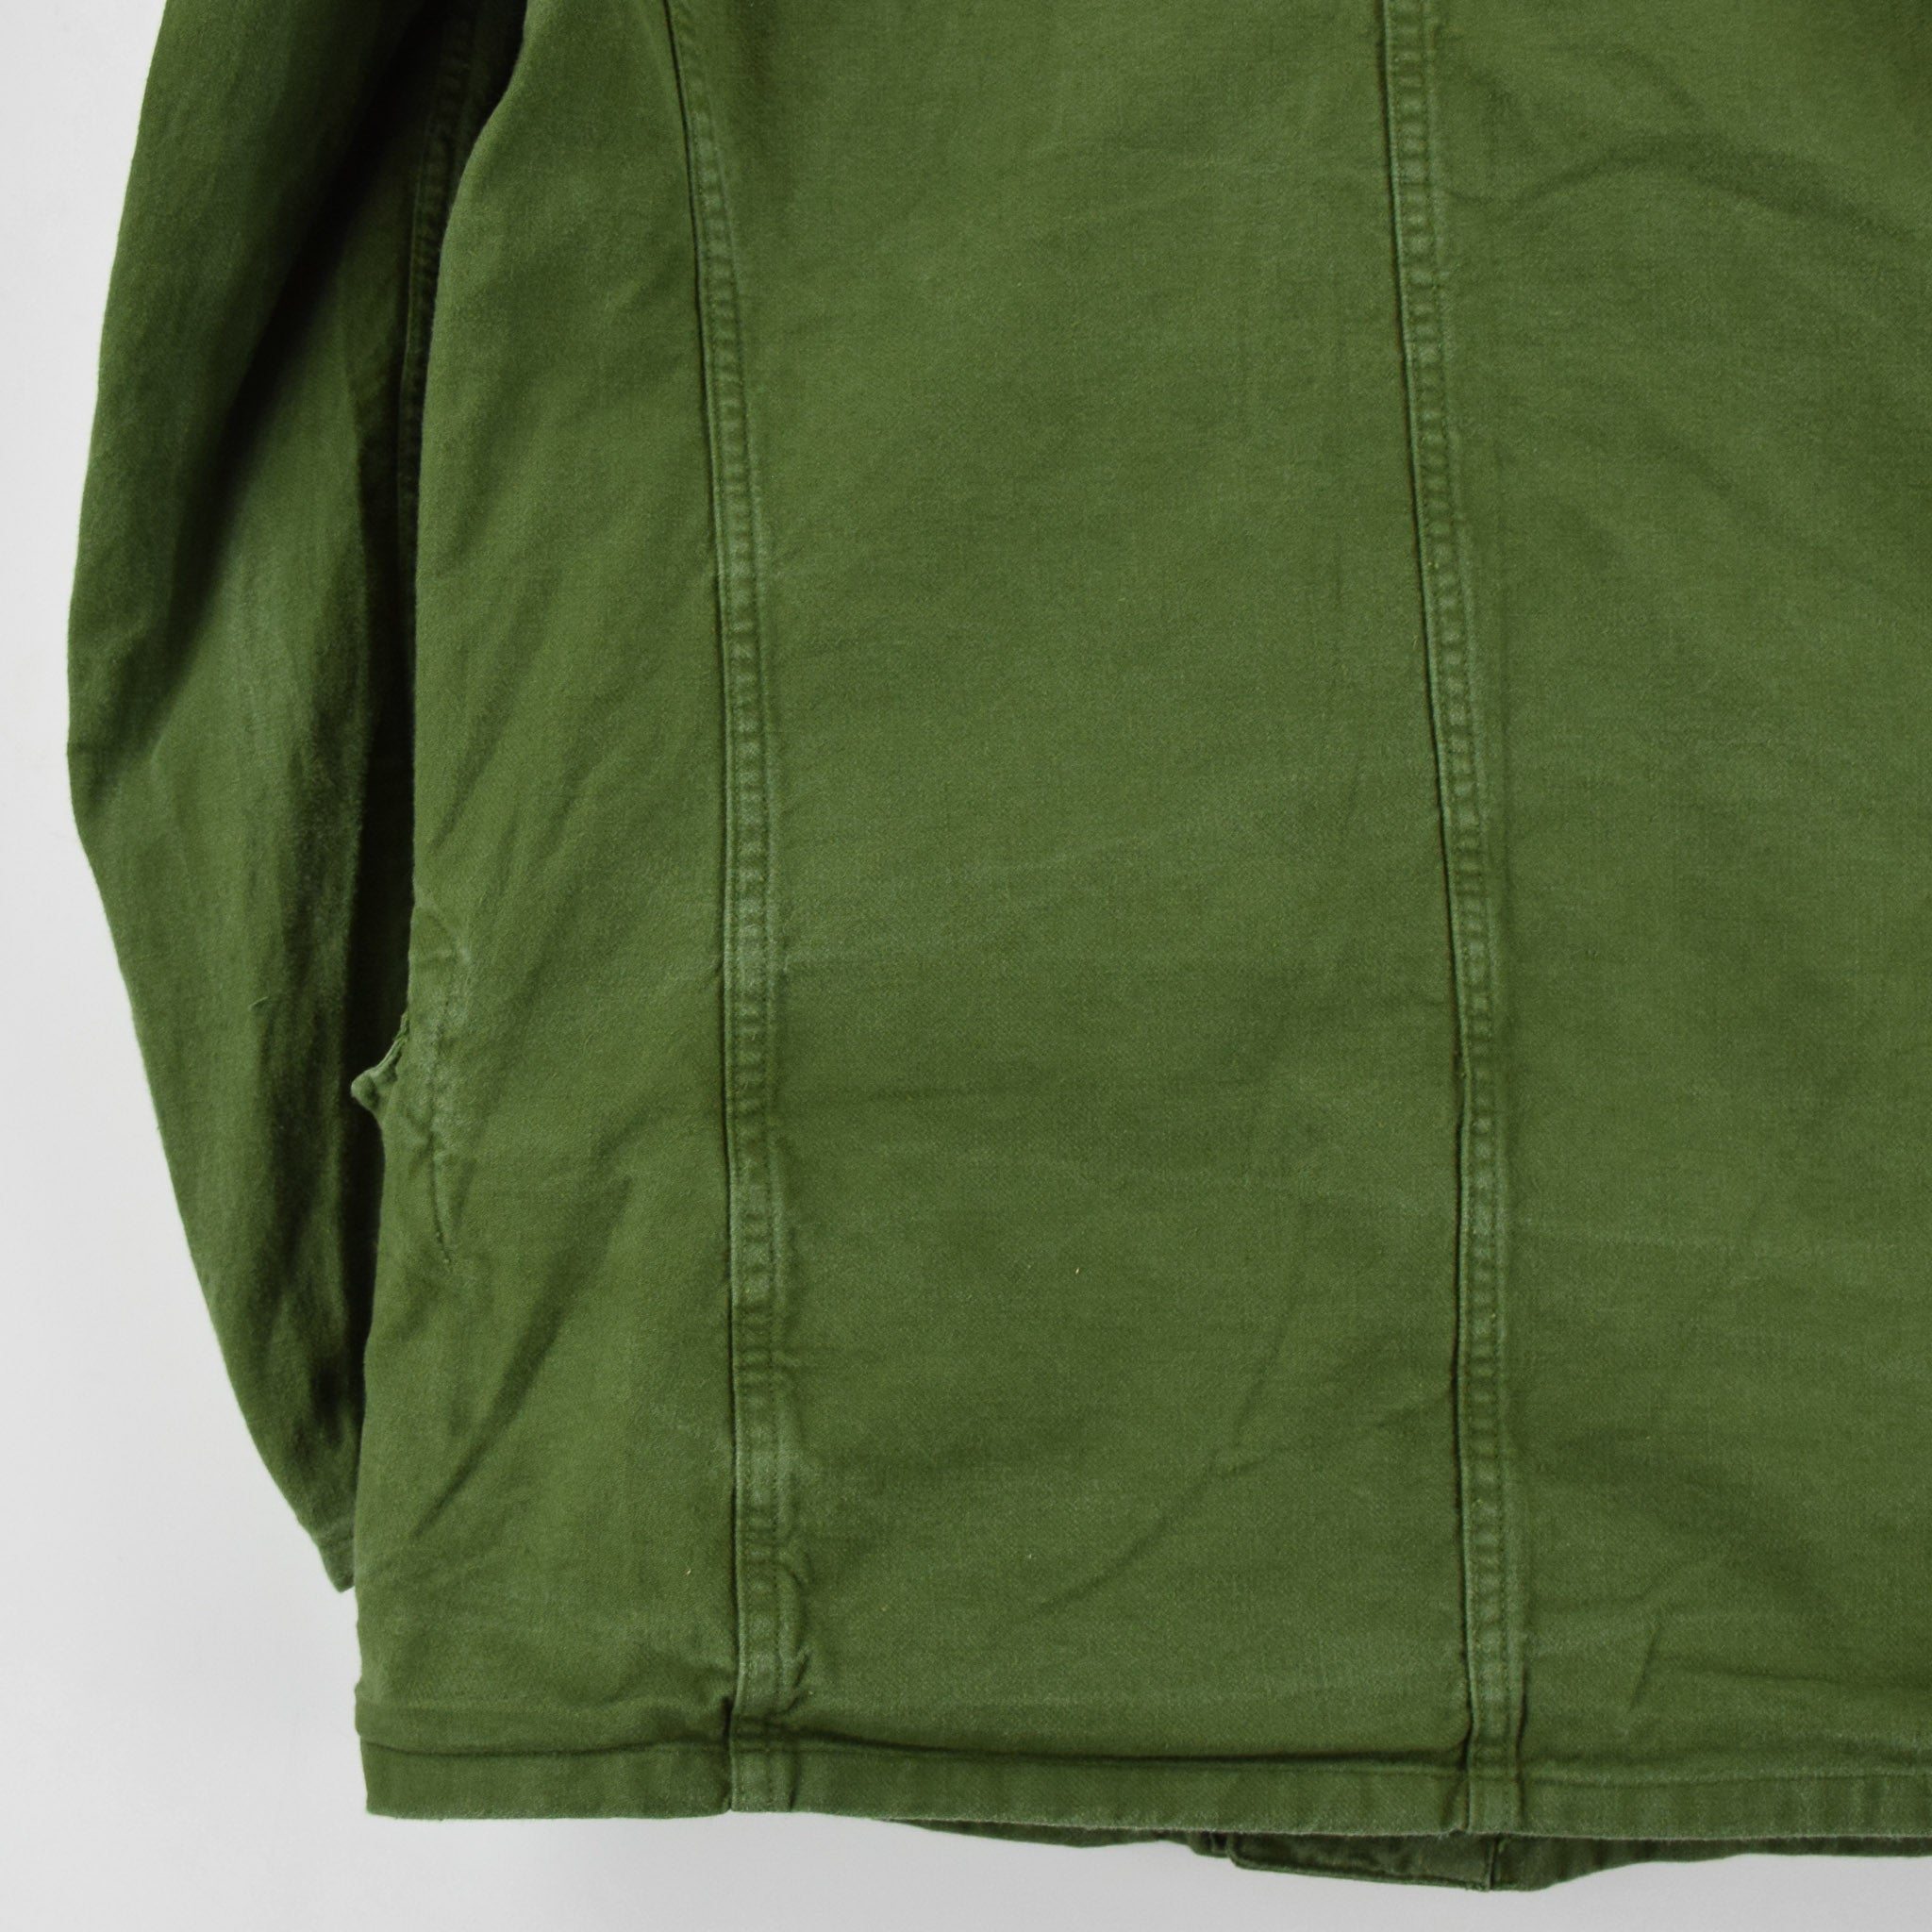 Vintage 60s Swedish Military Field Jacket Worker Style Distressed Green S back hem